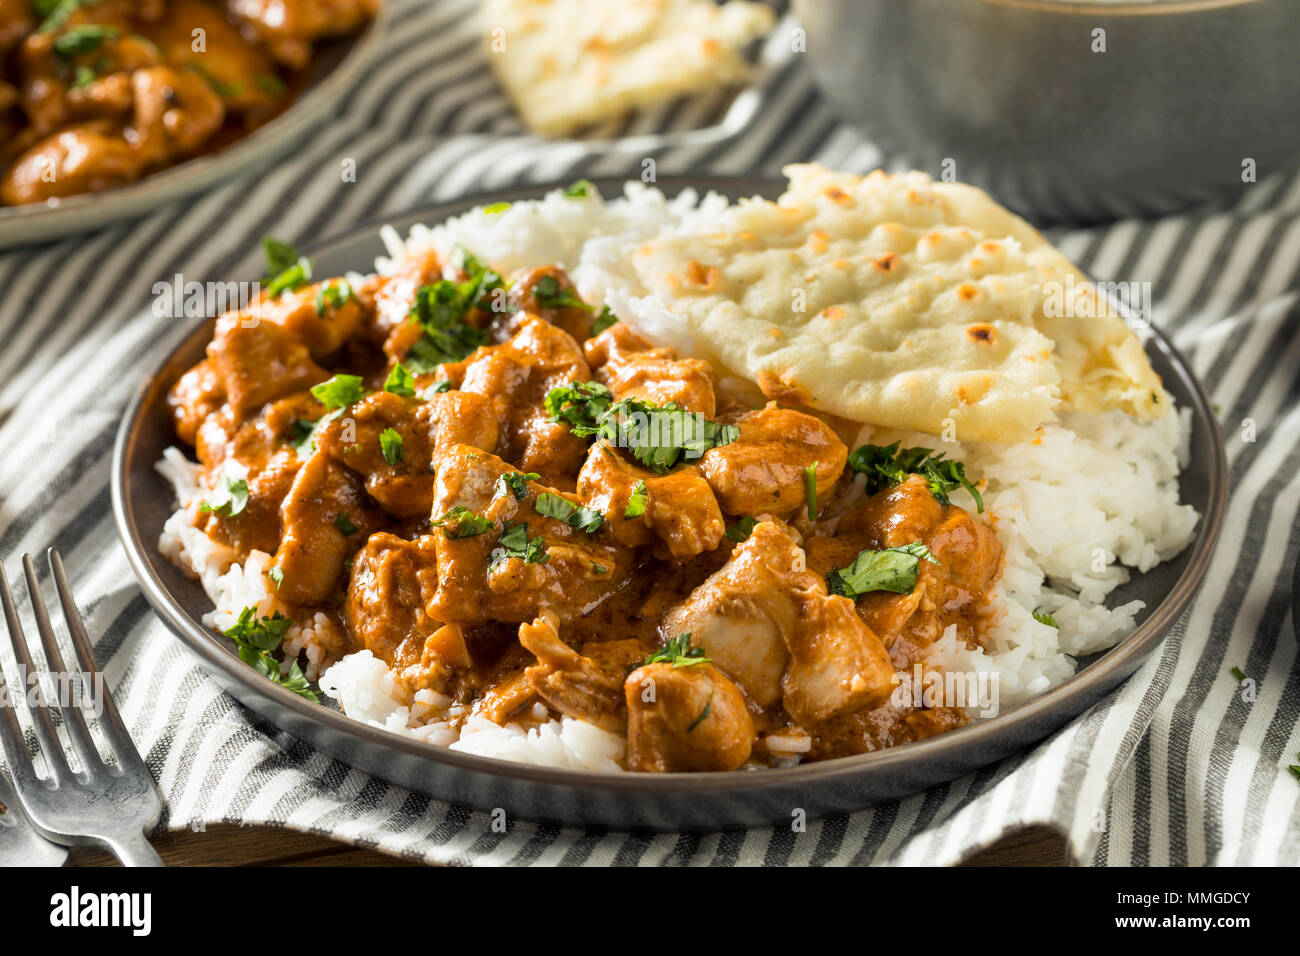 Homemade Indian Butter Chicken With Rice And Naan Bread Stock Photo Alamy